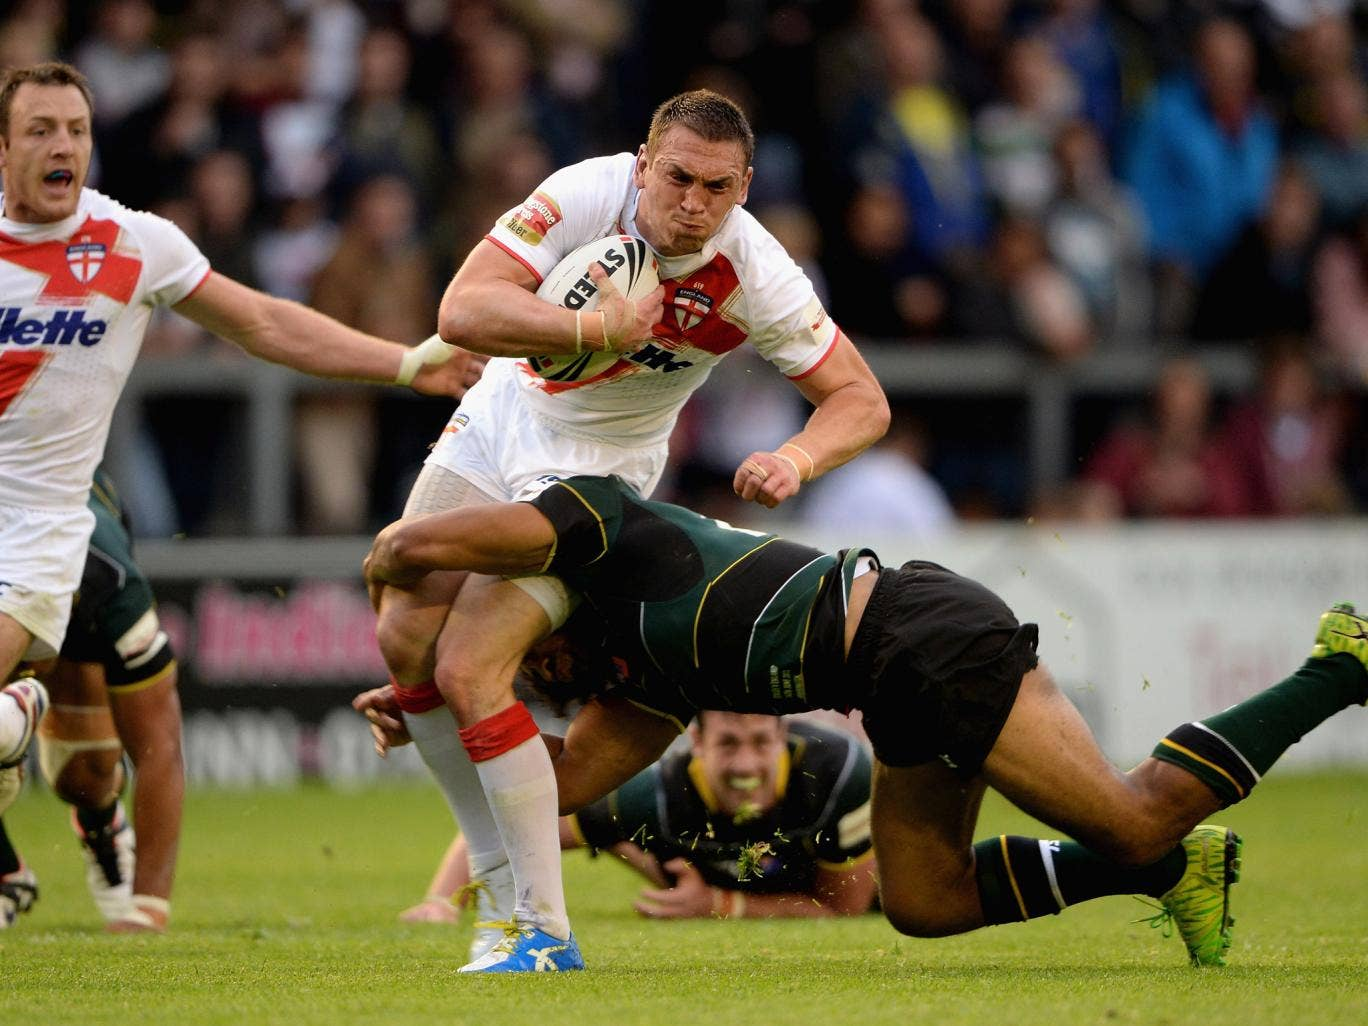 England captain Kevin Sinfield attempts to break the tackle of Sia Soliola